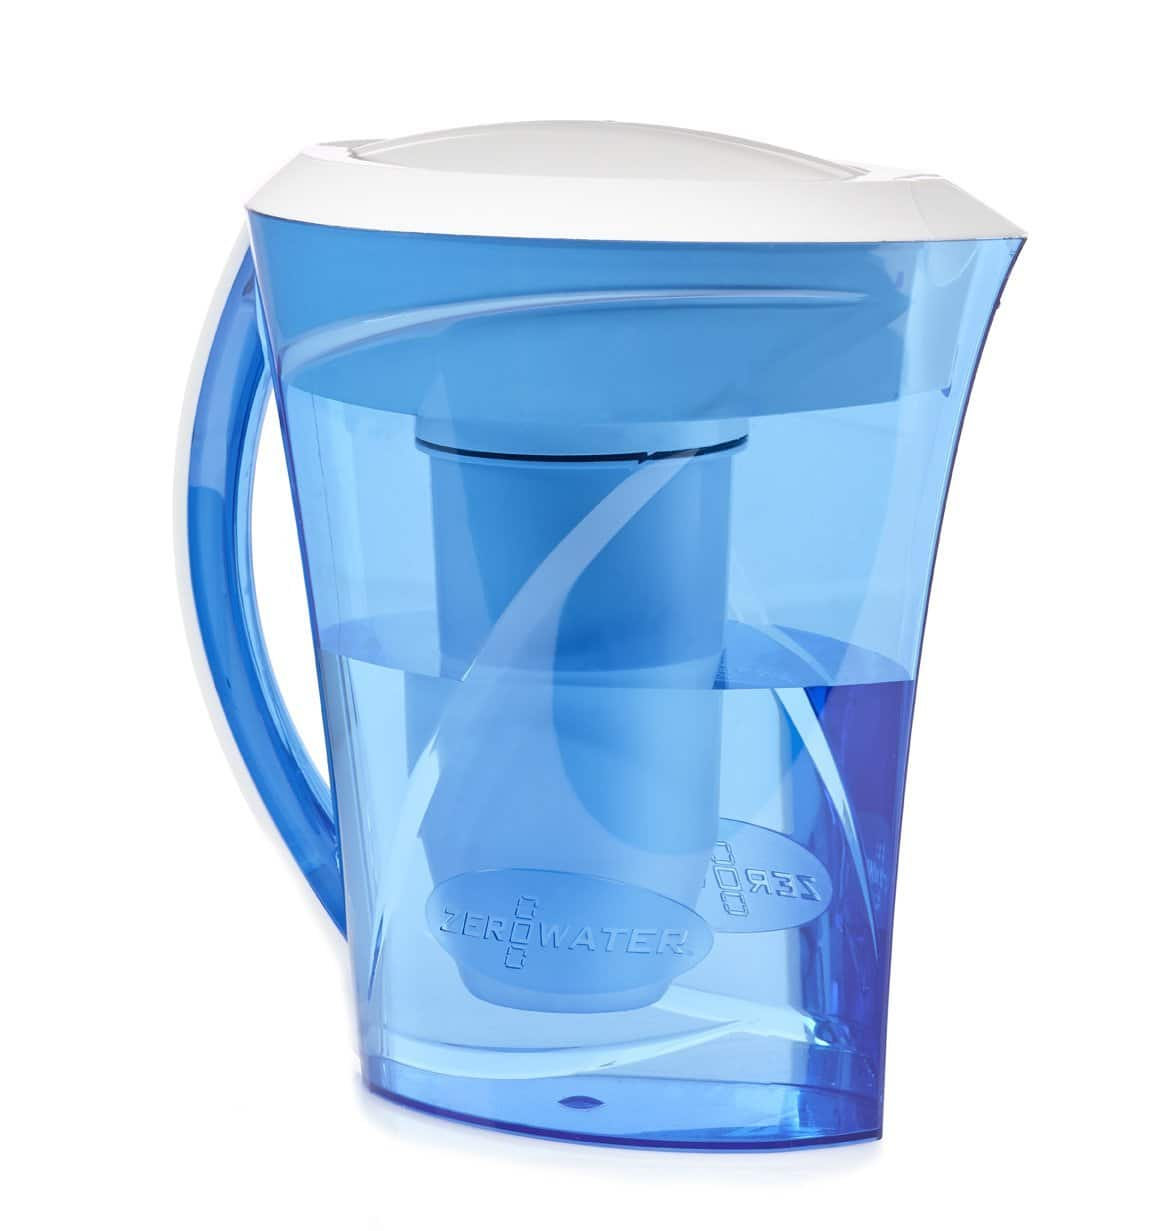 ZeroWater 8-Cup Filtration Pitcher $11 + Free Store Pickup Walmart.com